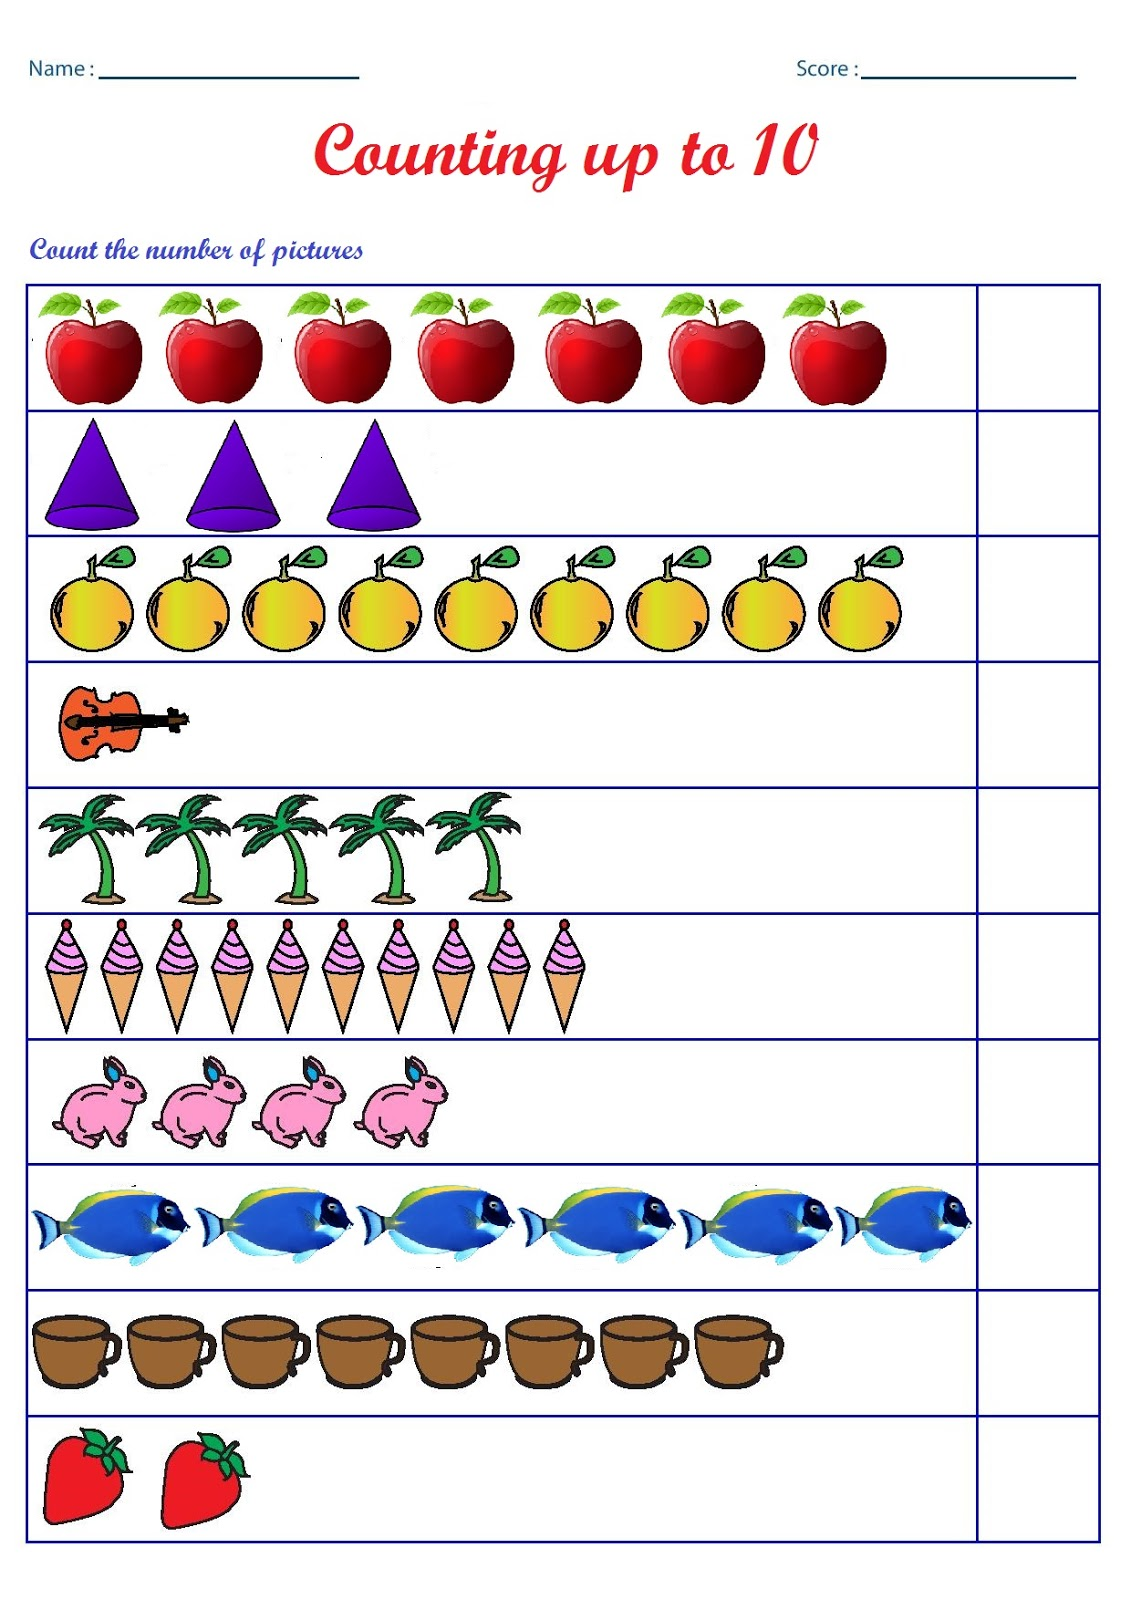 Worksheets Counting Worksheets For Preschool kindergarten worksheets counting count the number of pictures up to 10